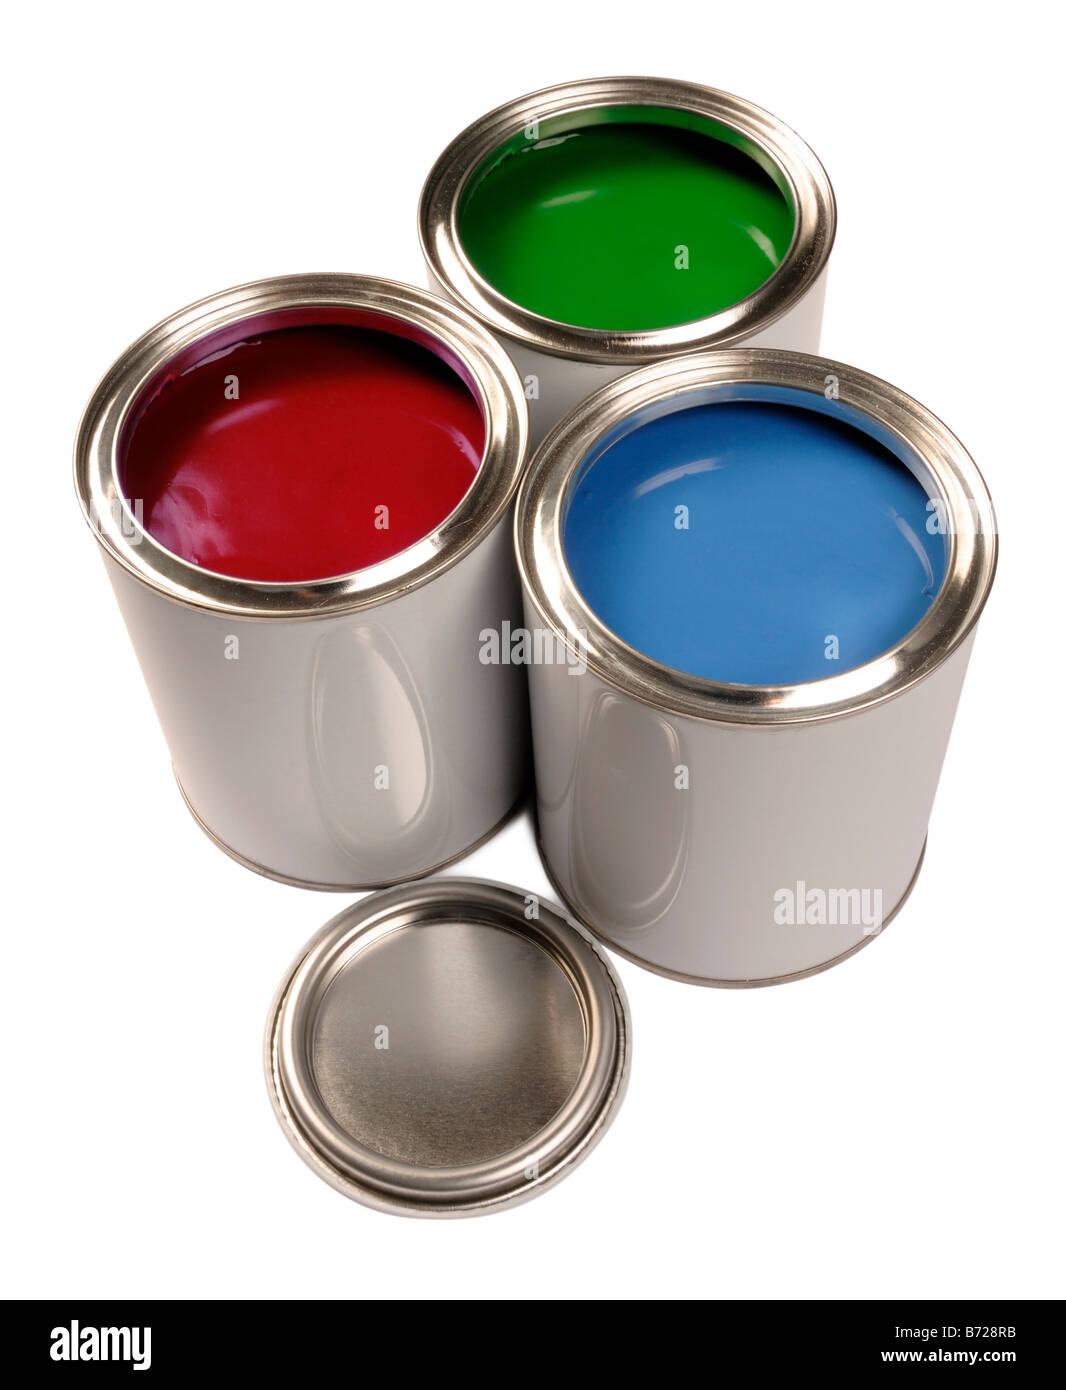 Red Green Blue paint tins - Stock Image